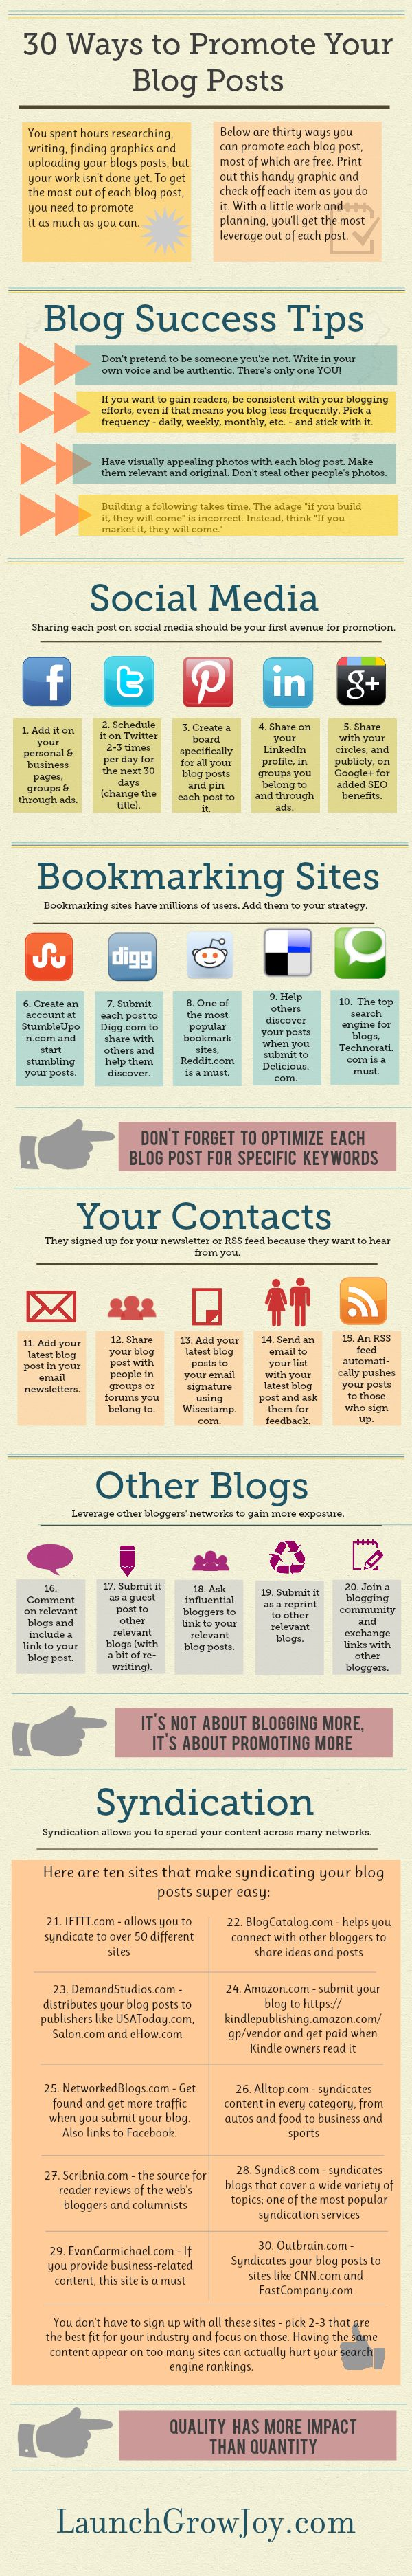 30 ways to improve blog posts